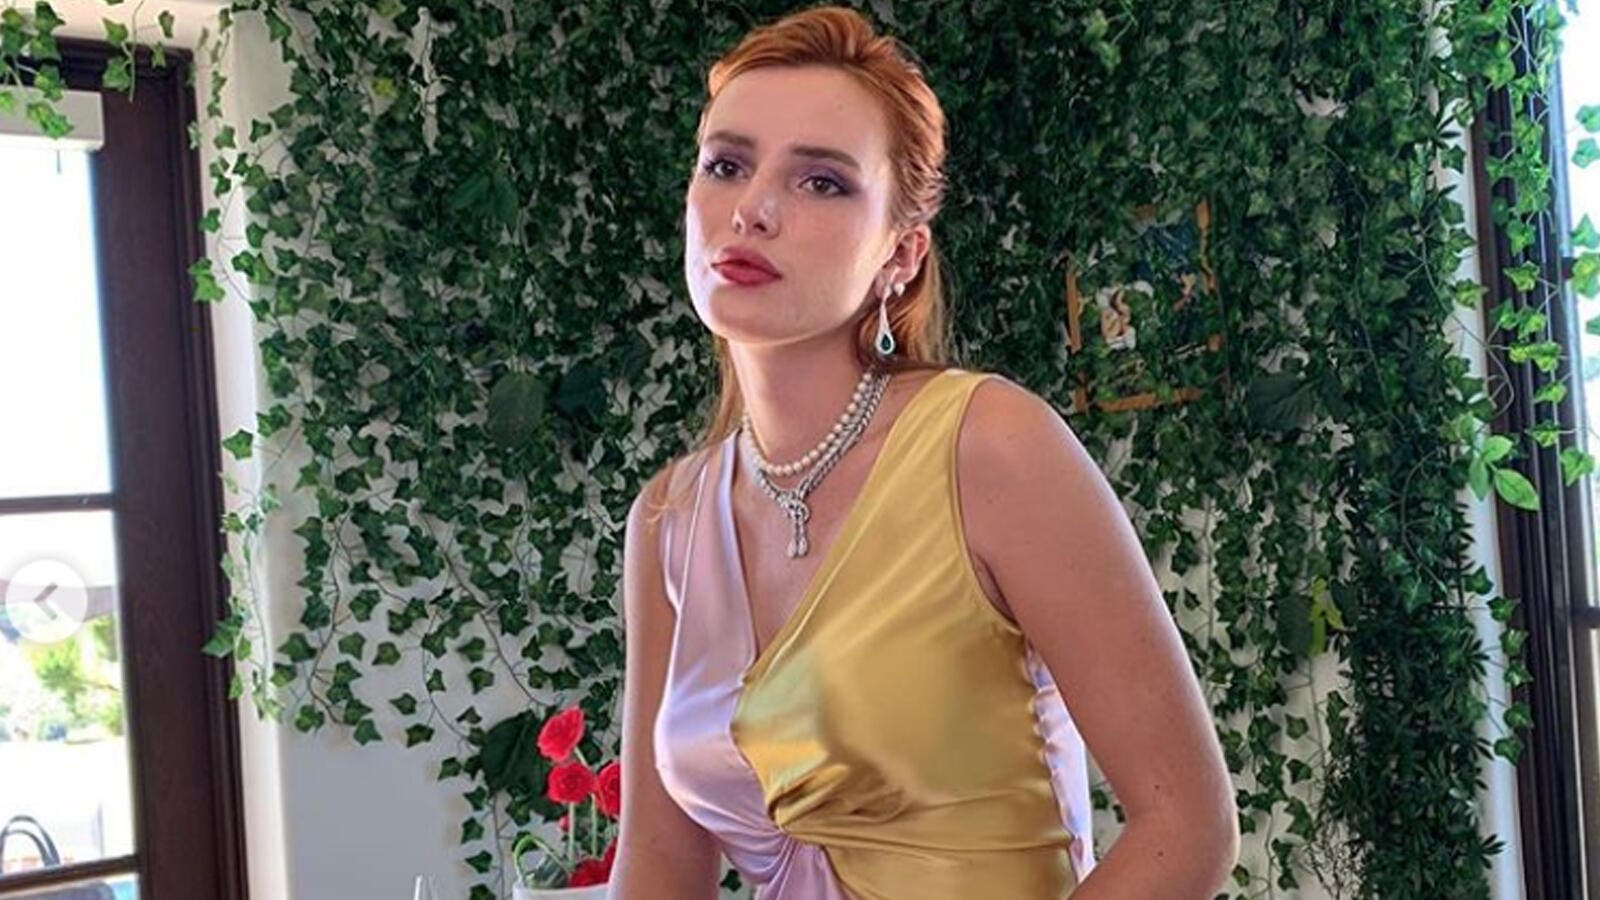 Bella Thorne Makes $1M in 24 hours on Adult Site OnlyFans